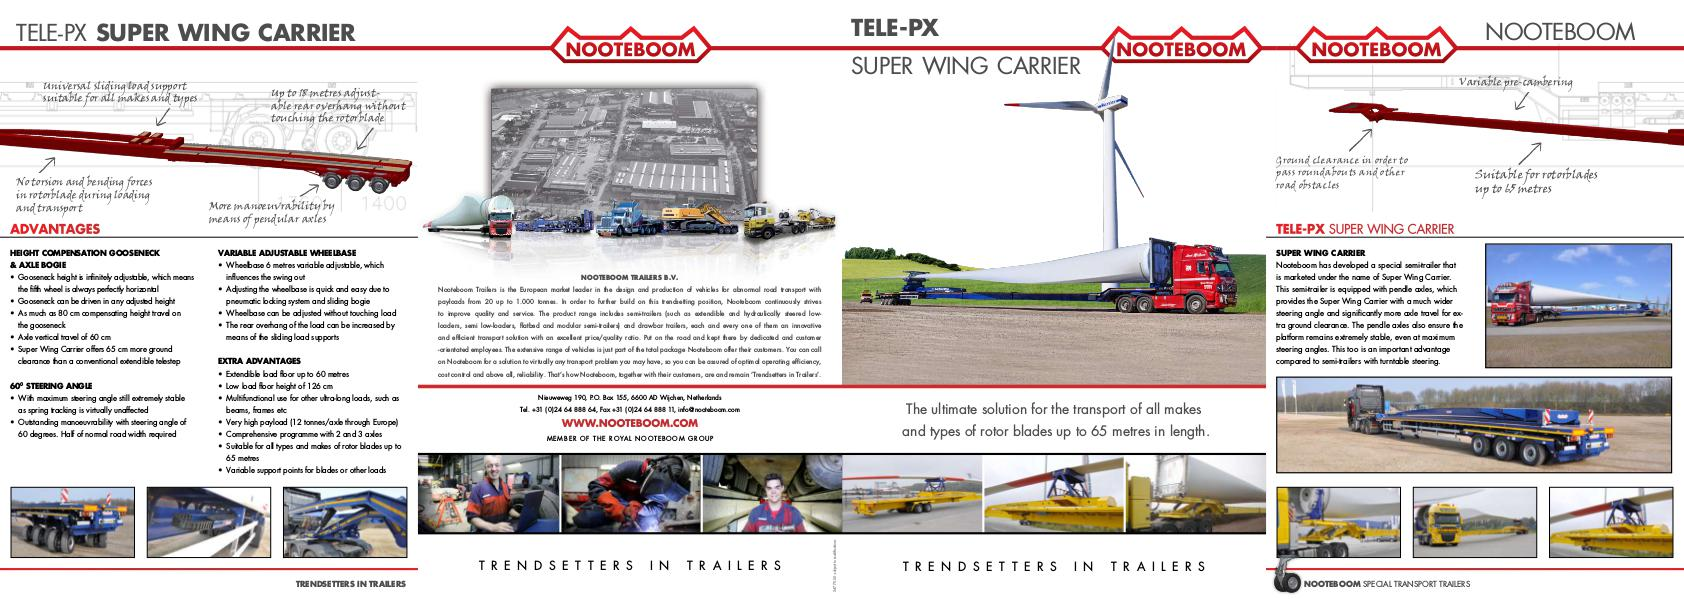 Nooteboom Documentation English Tele-PX Superwing carrier